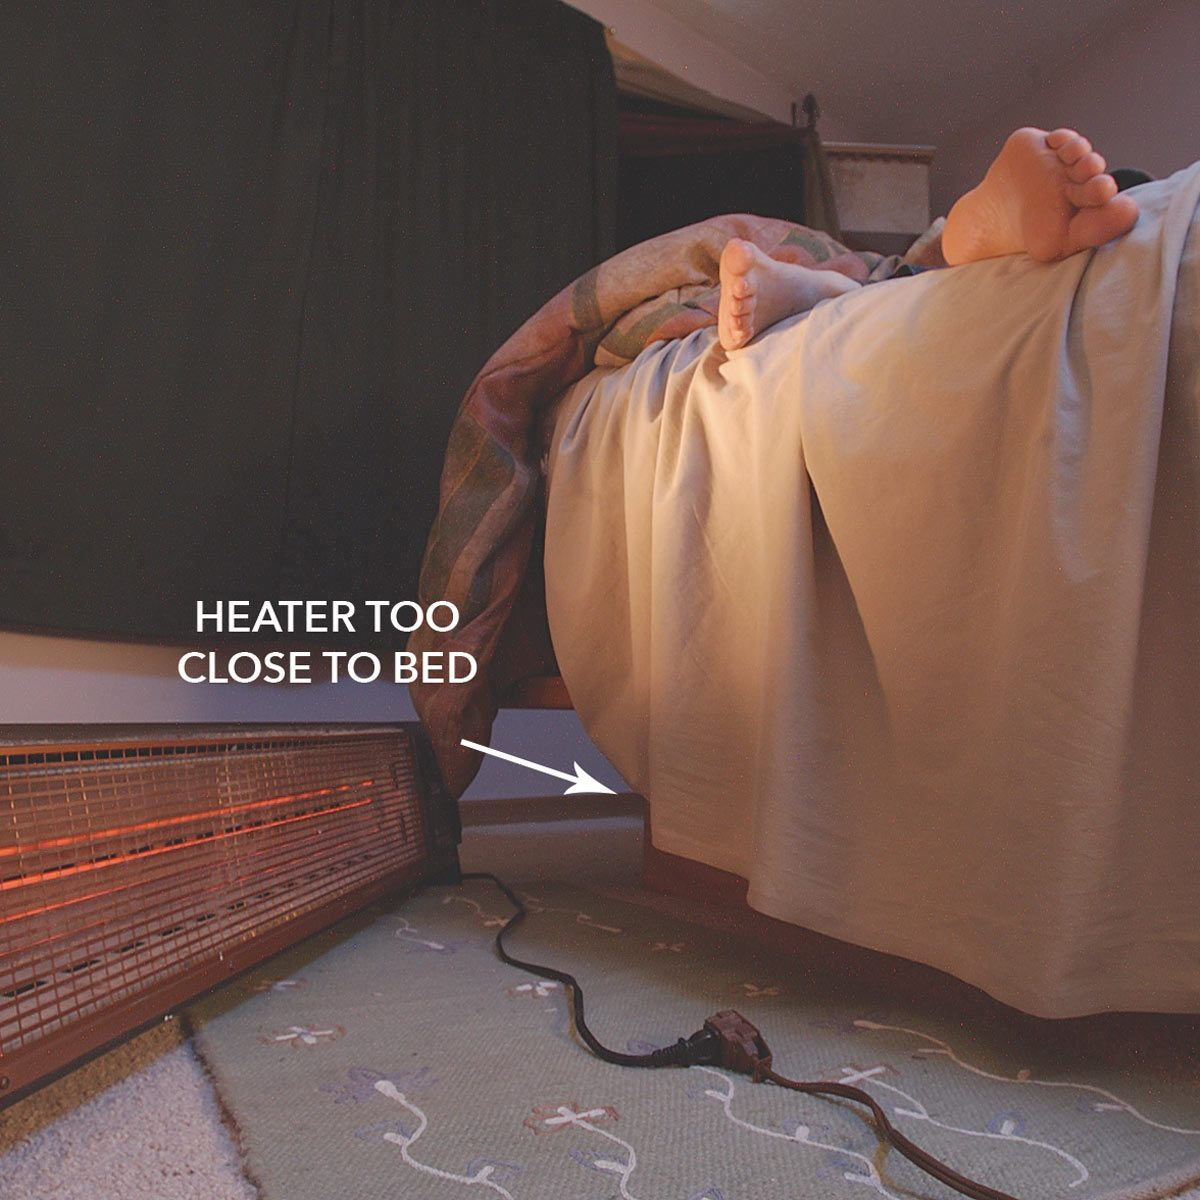 Don't Leave Space Heater Unattended